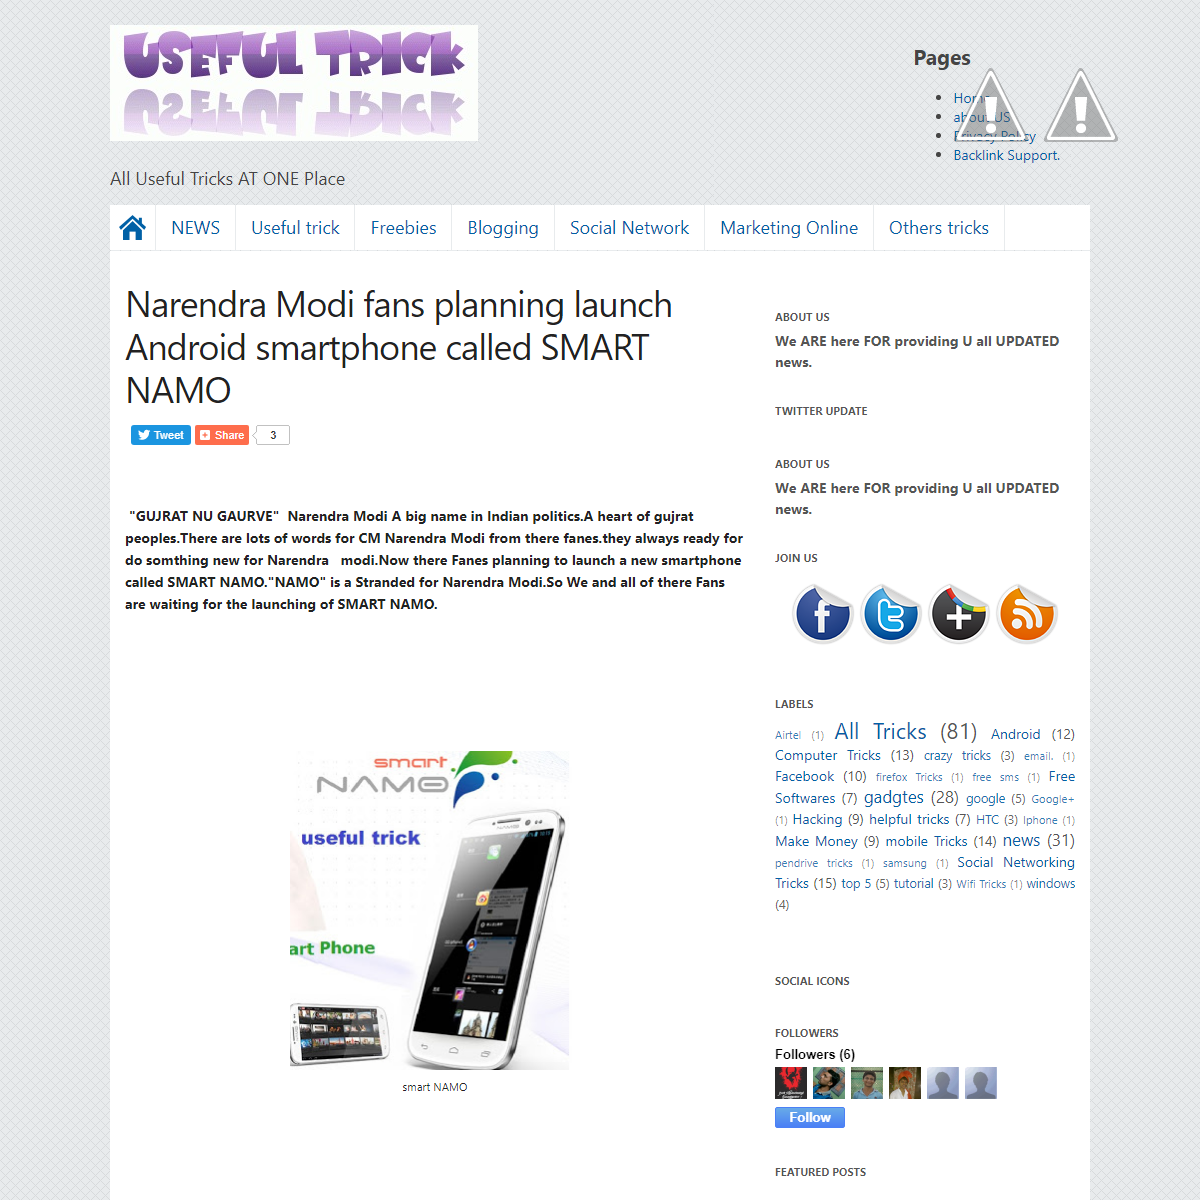 Narendra Modi fans planning launch Android smartphone called SMART NAMO - useful trick